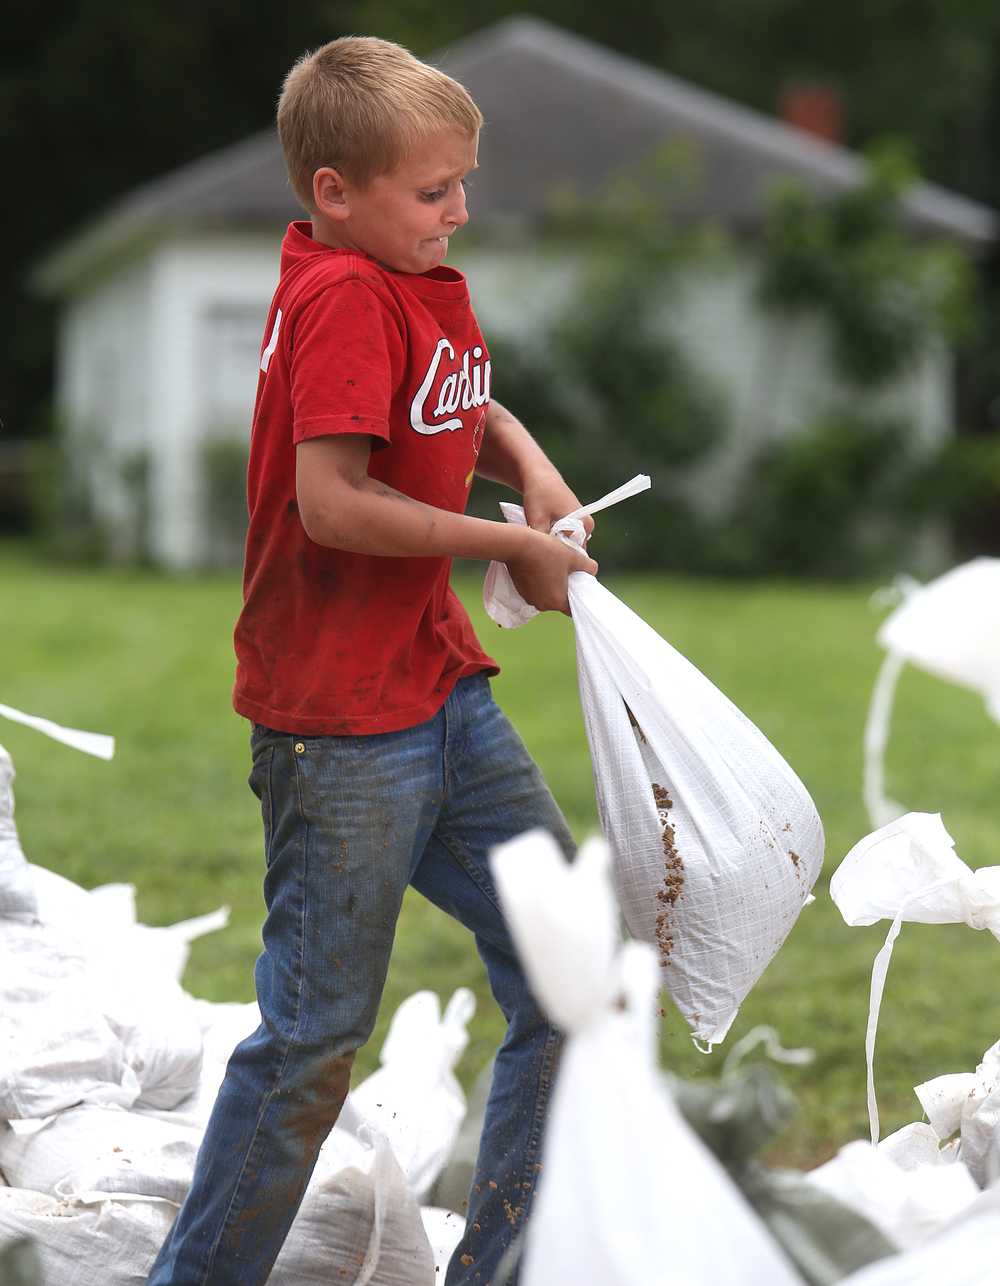 Eight-year-old Owen Luckett was getting a workout while filling sandbags at James Boyd Park on Thursday. Luckett, who had been filling bags for about an hour at the time this photo was taken said he was enjoying the task. Also helping him was his older brother Gregory Luckett and friend Wesley Gooding. David Spencer/The State Journal-Register